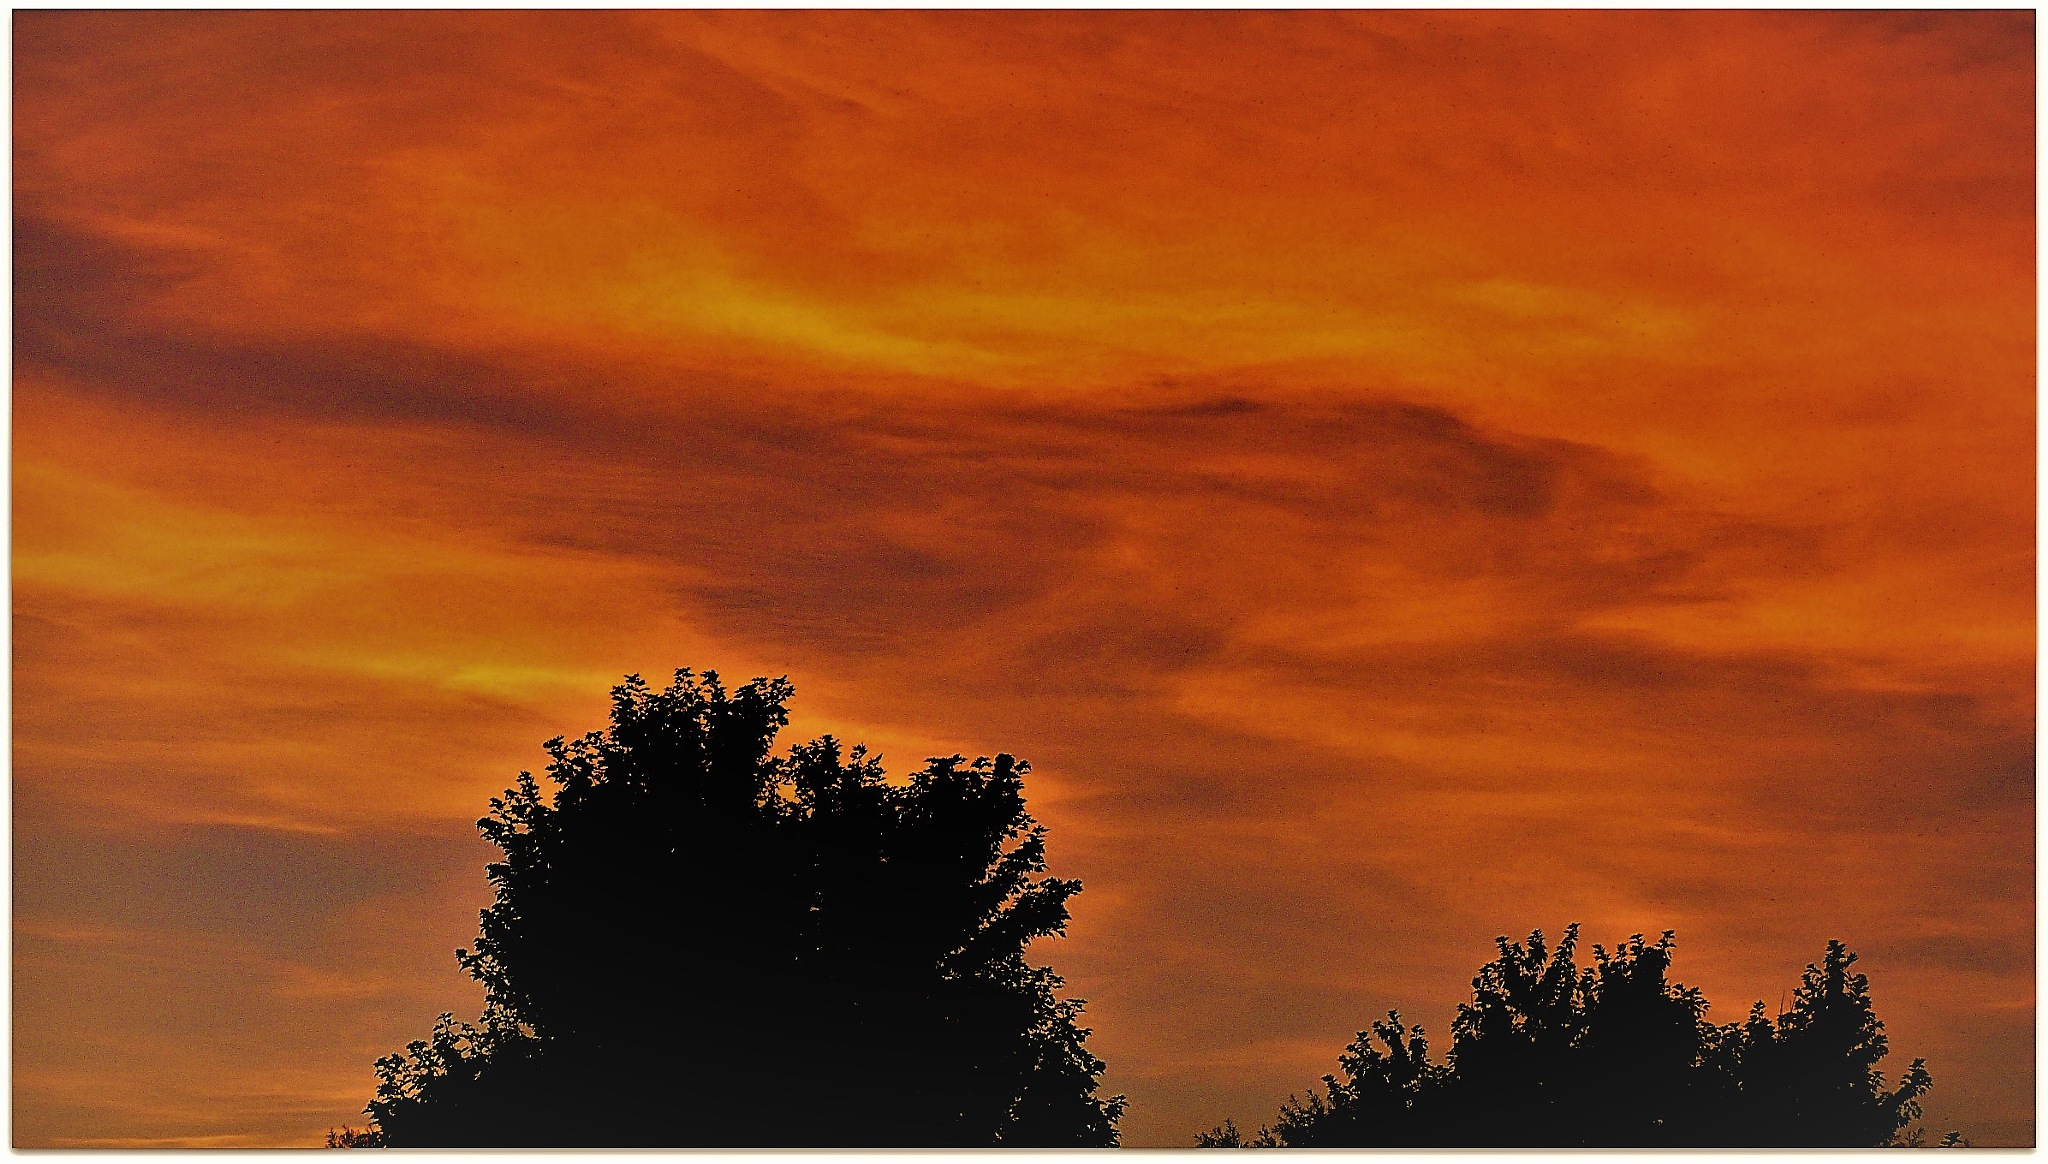 Sunset on the Eastern Sky  (sometimes the  sunset reflects on the Eastern sky) by maria.telegdy